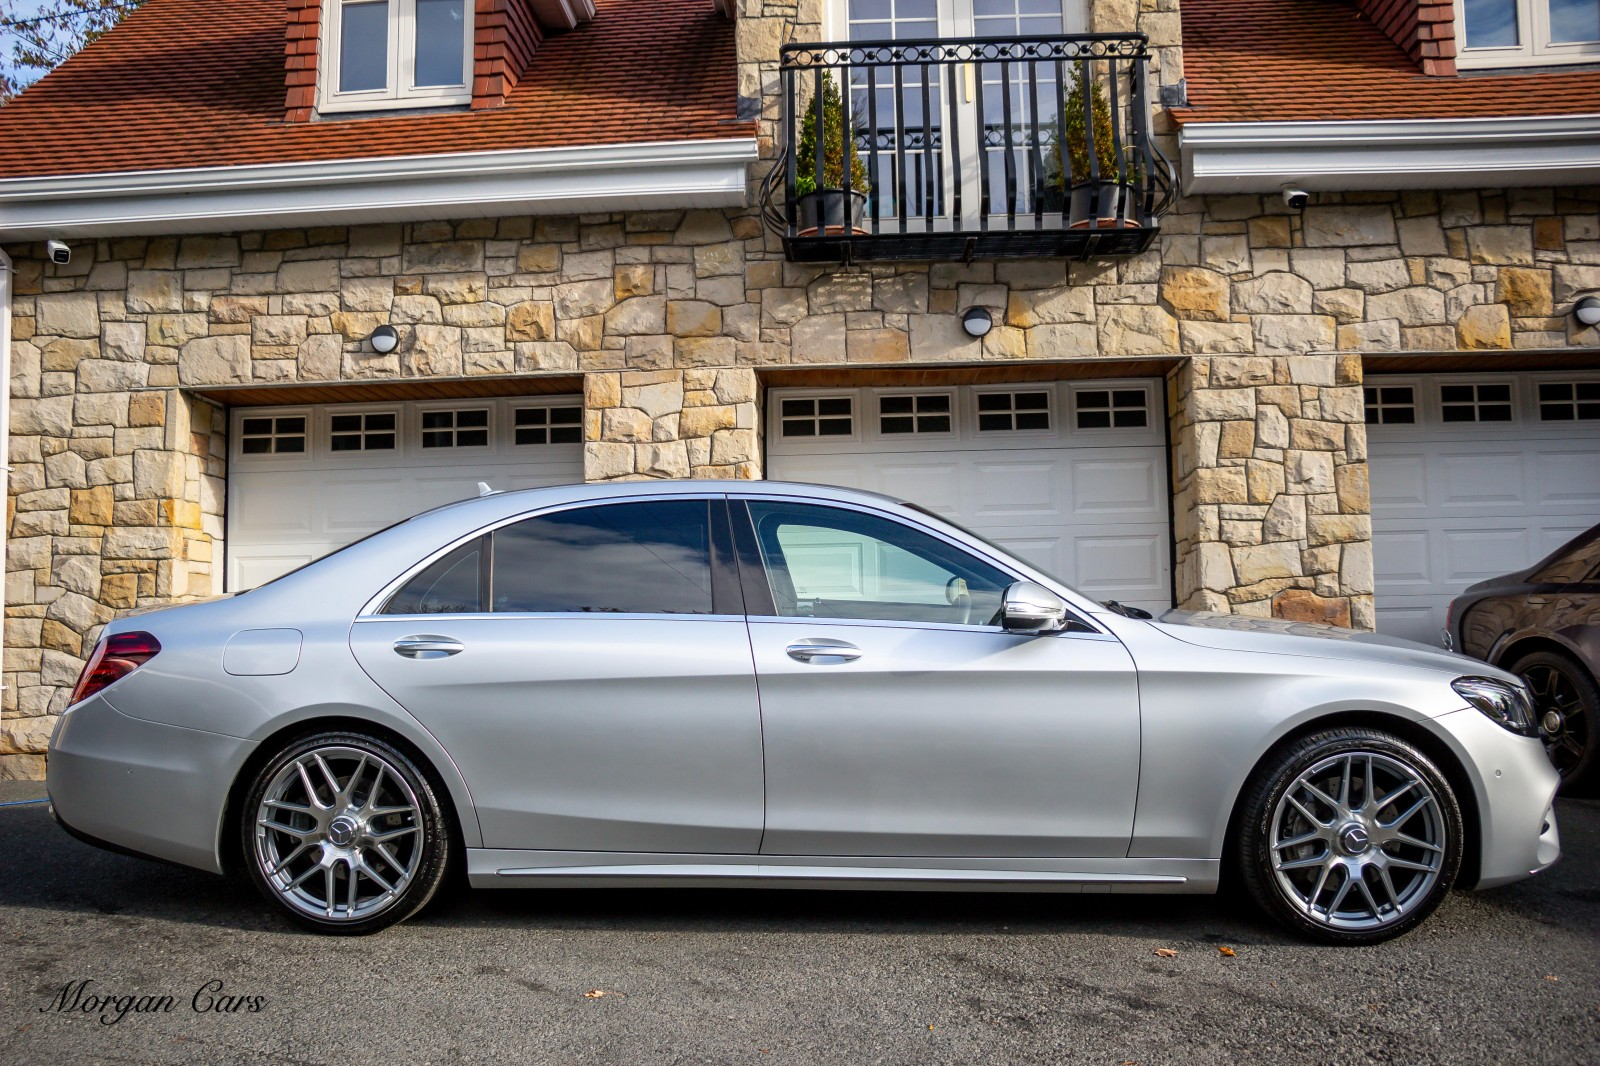 2018 Mercedes-Benz S Class S 350 D L AMG LINE EXECUTIVE Diesel Automatic – Morgan Cars 9 Mound Road, Warrenpoint, Newry BT34 3LW, UK full